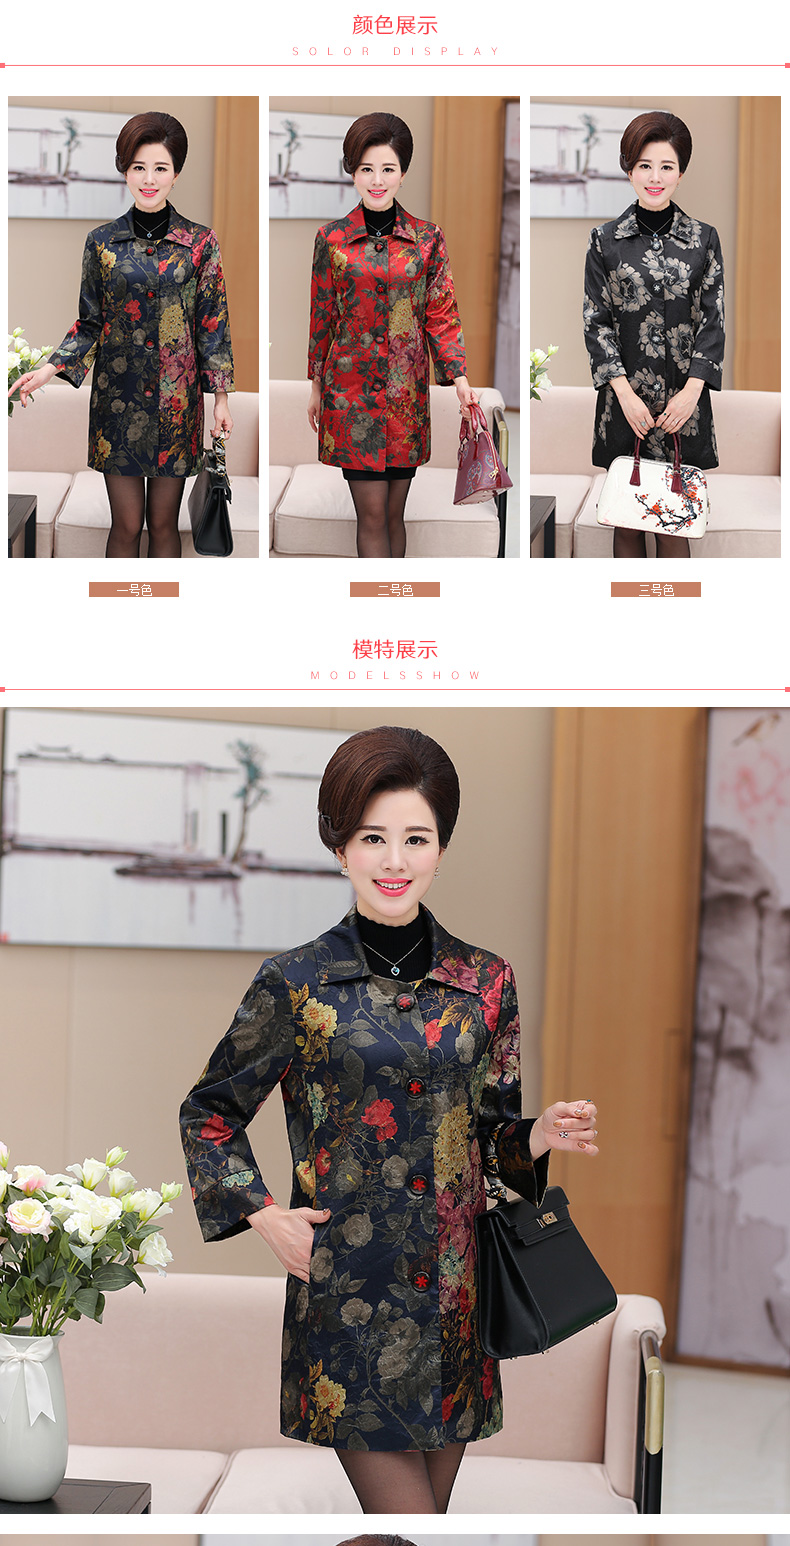 Chinese Women\'s Elegant Floral Trench Coats Single-breasted Duster Coat Matrue Woman Office Outfit Mandeau Femme Overcoats 2017 (3)